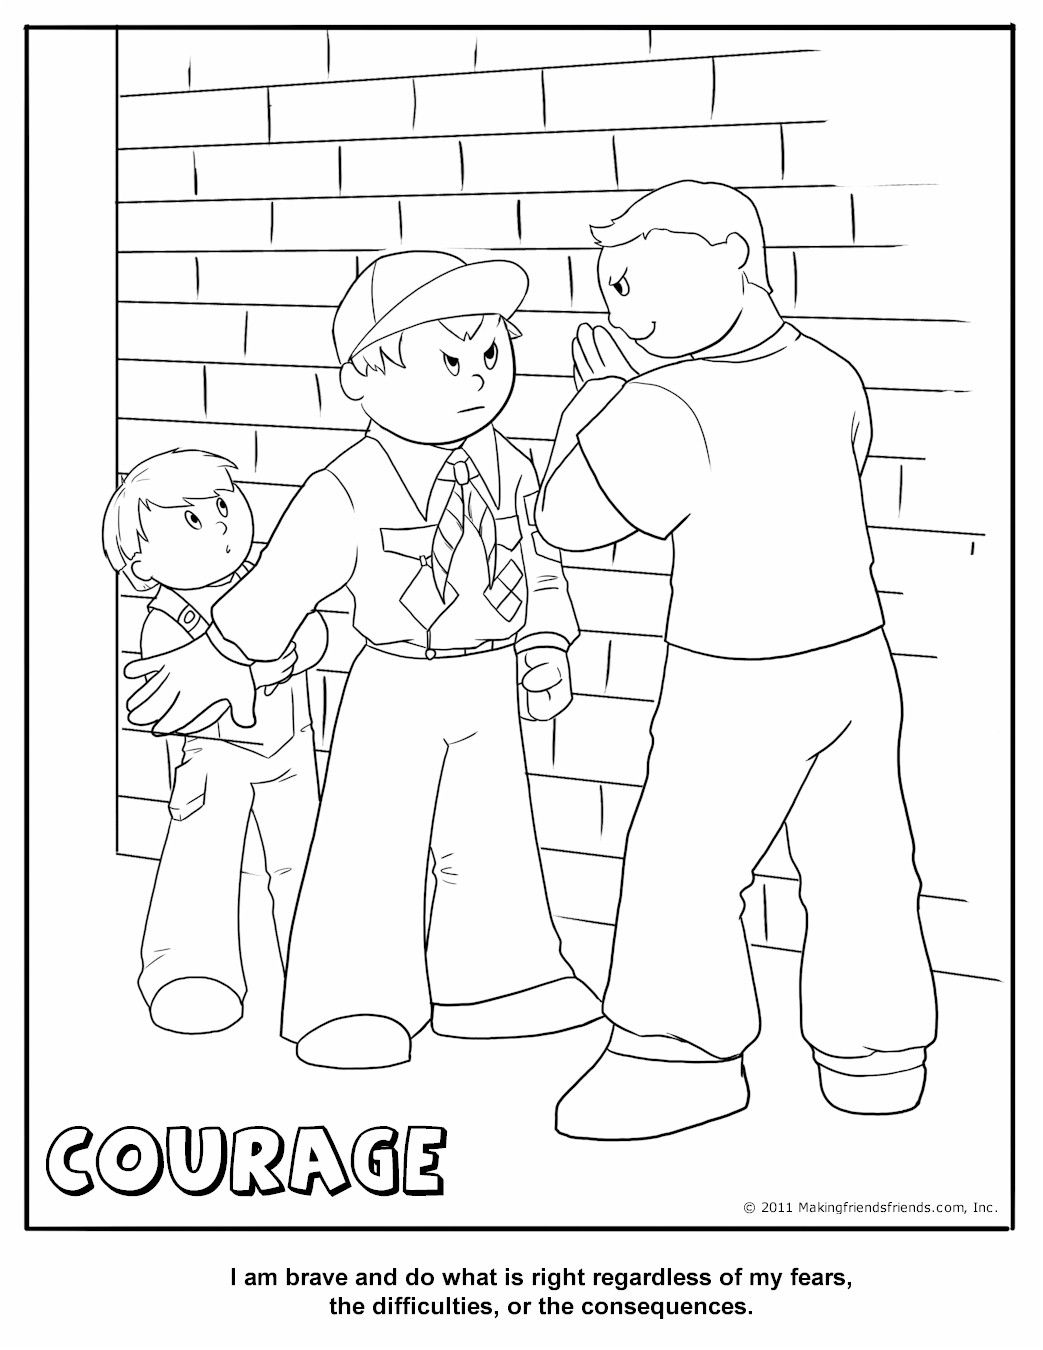 Courage Coloring Page At Getdrawings